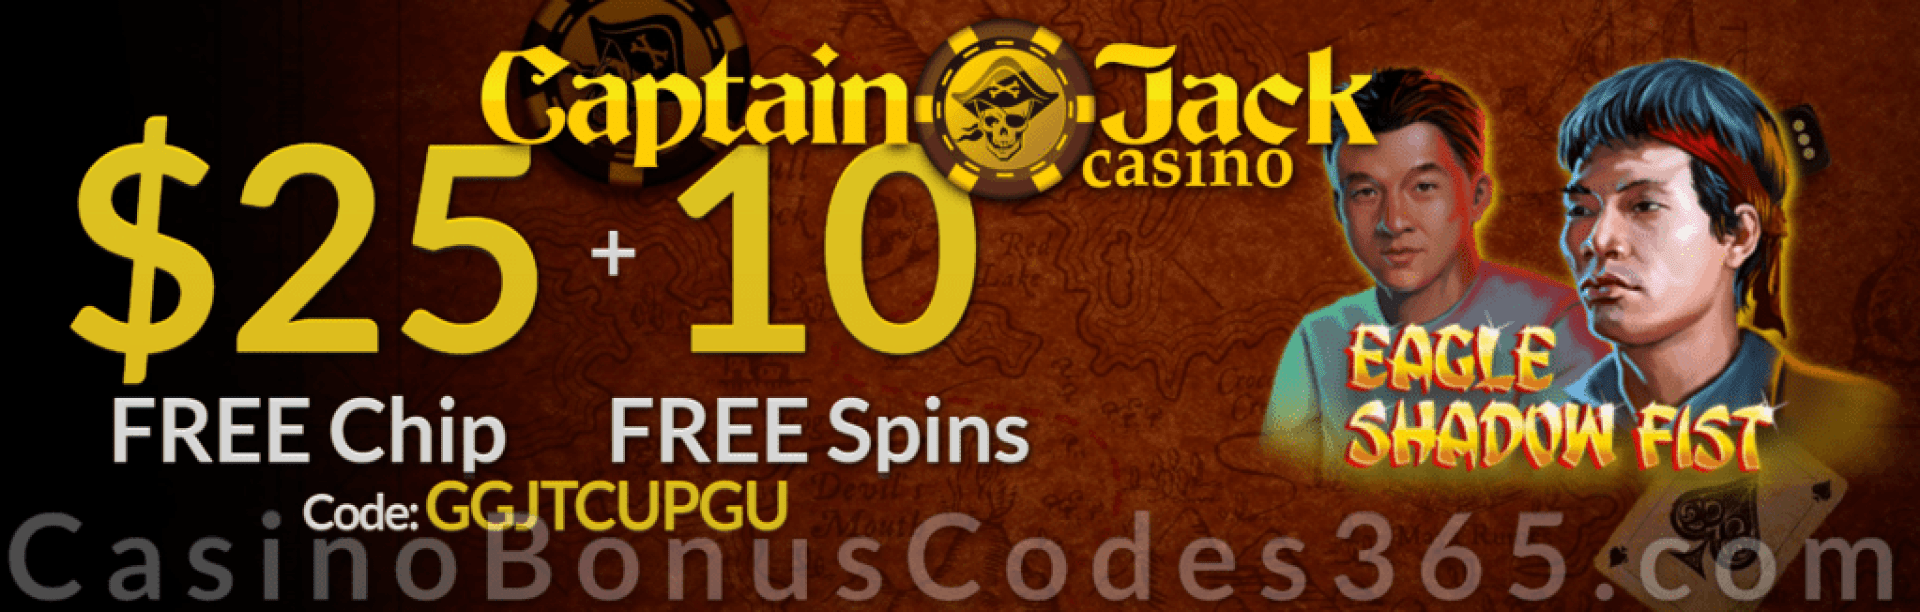 Captain Jack Casino $25 FREE Chip plus 10 FREE Spins RTG Eagle Shadow Fist